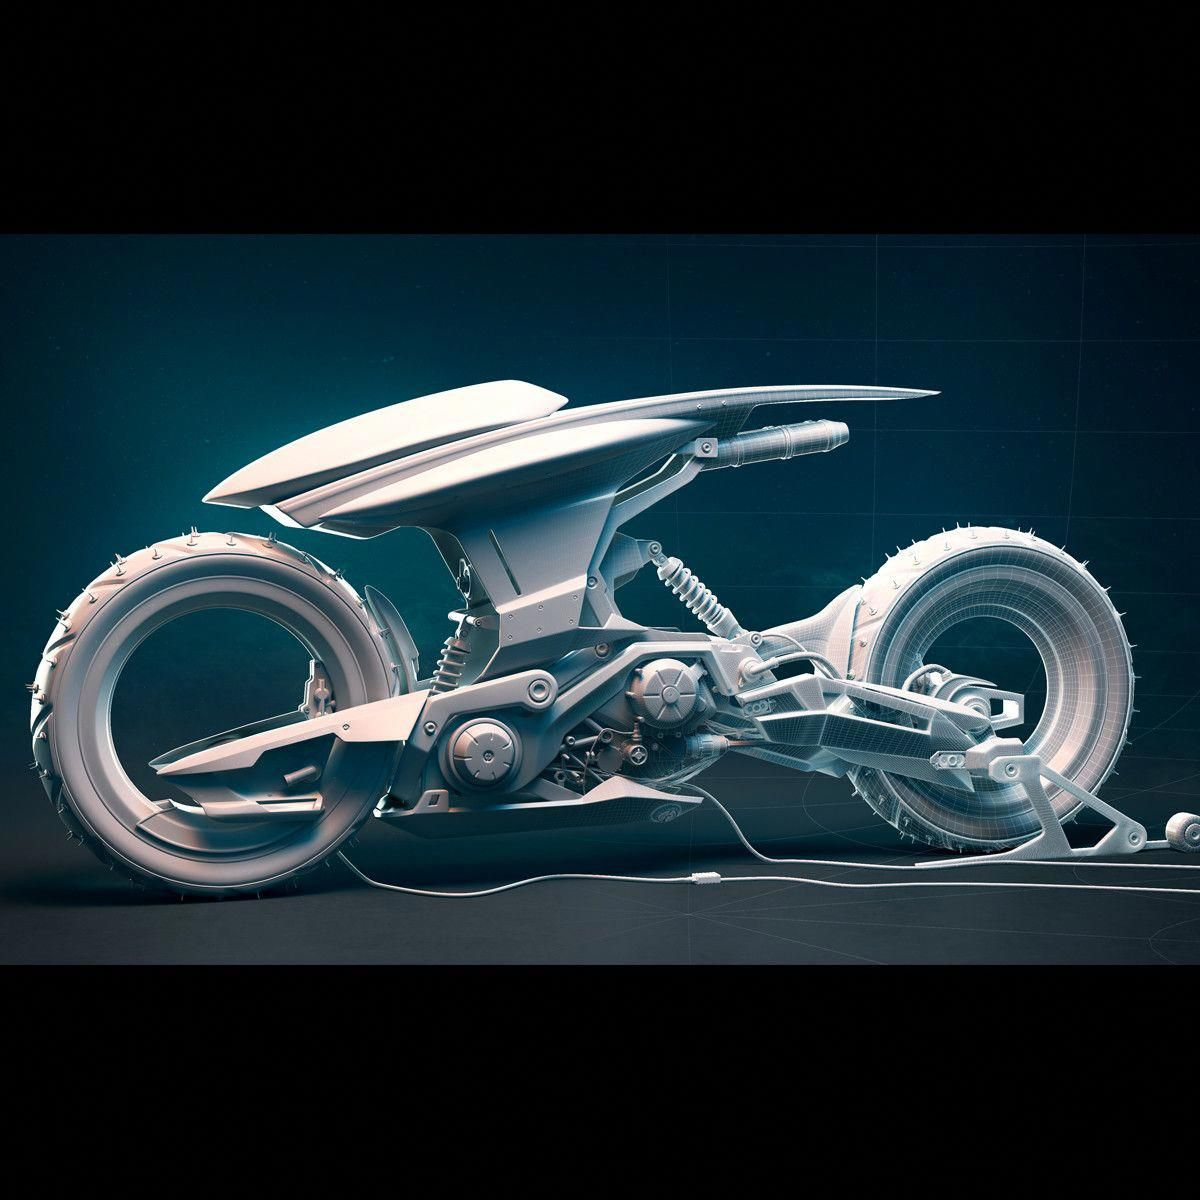 Fantastic Concept Cars Detail Is Available On Our Website Have A Look And You Will Not Be Sorry Concept Motorcycles Car And Motorcycle Design Futuristic Cars